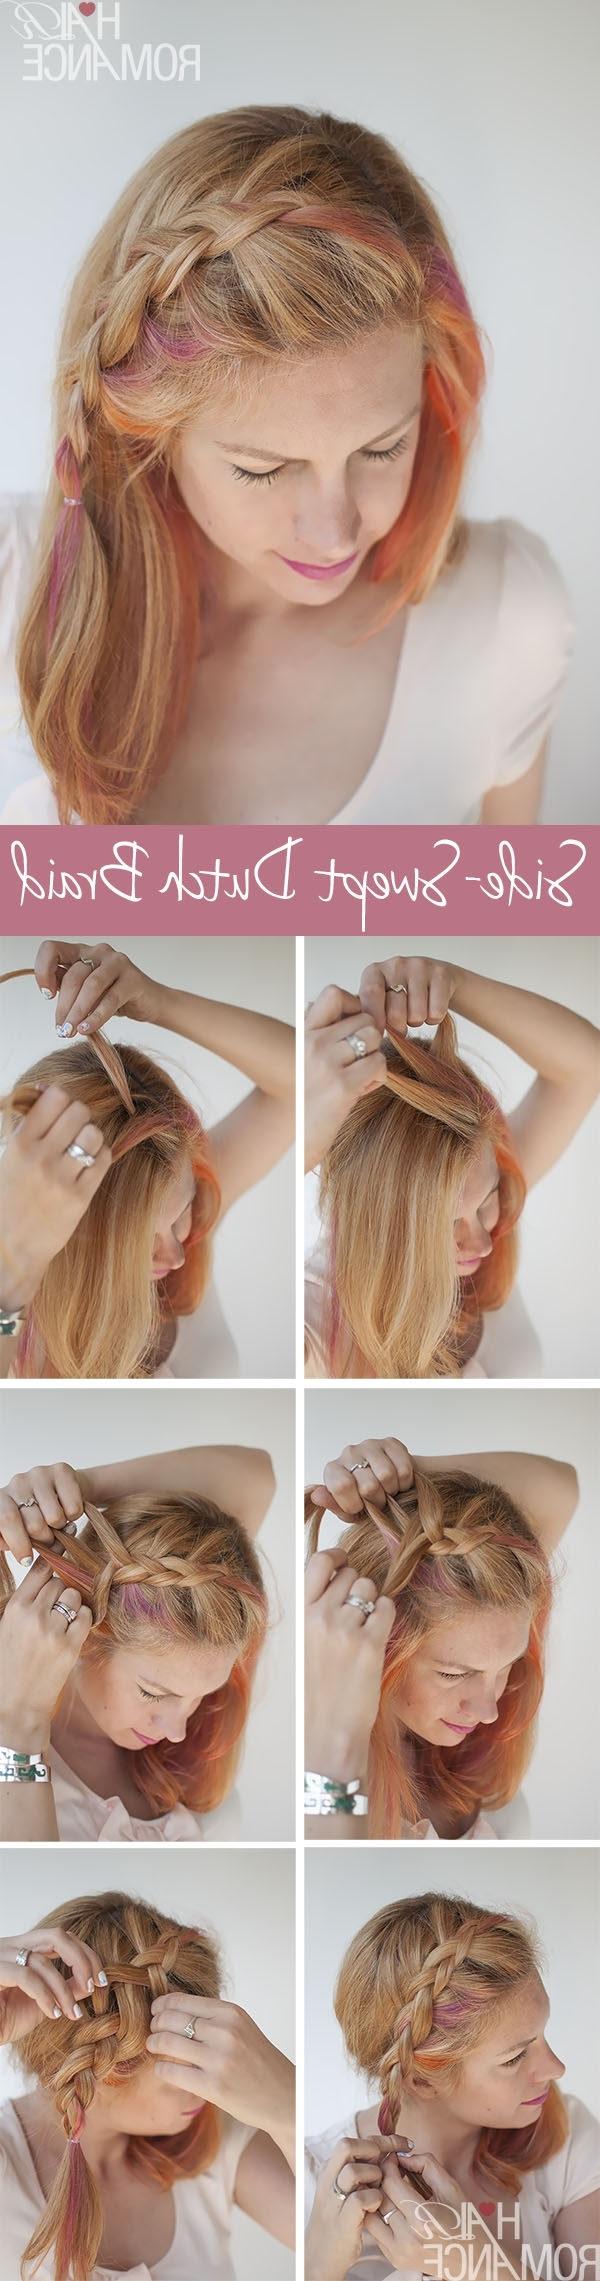 Most Up To Date Braid And Side Bang Hairstyles Intended For Side Swept Dutch Braid Hairstyle Tutorial – Hair Romance (View 12 of 15)